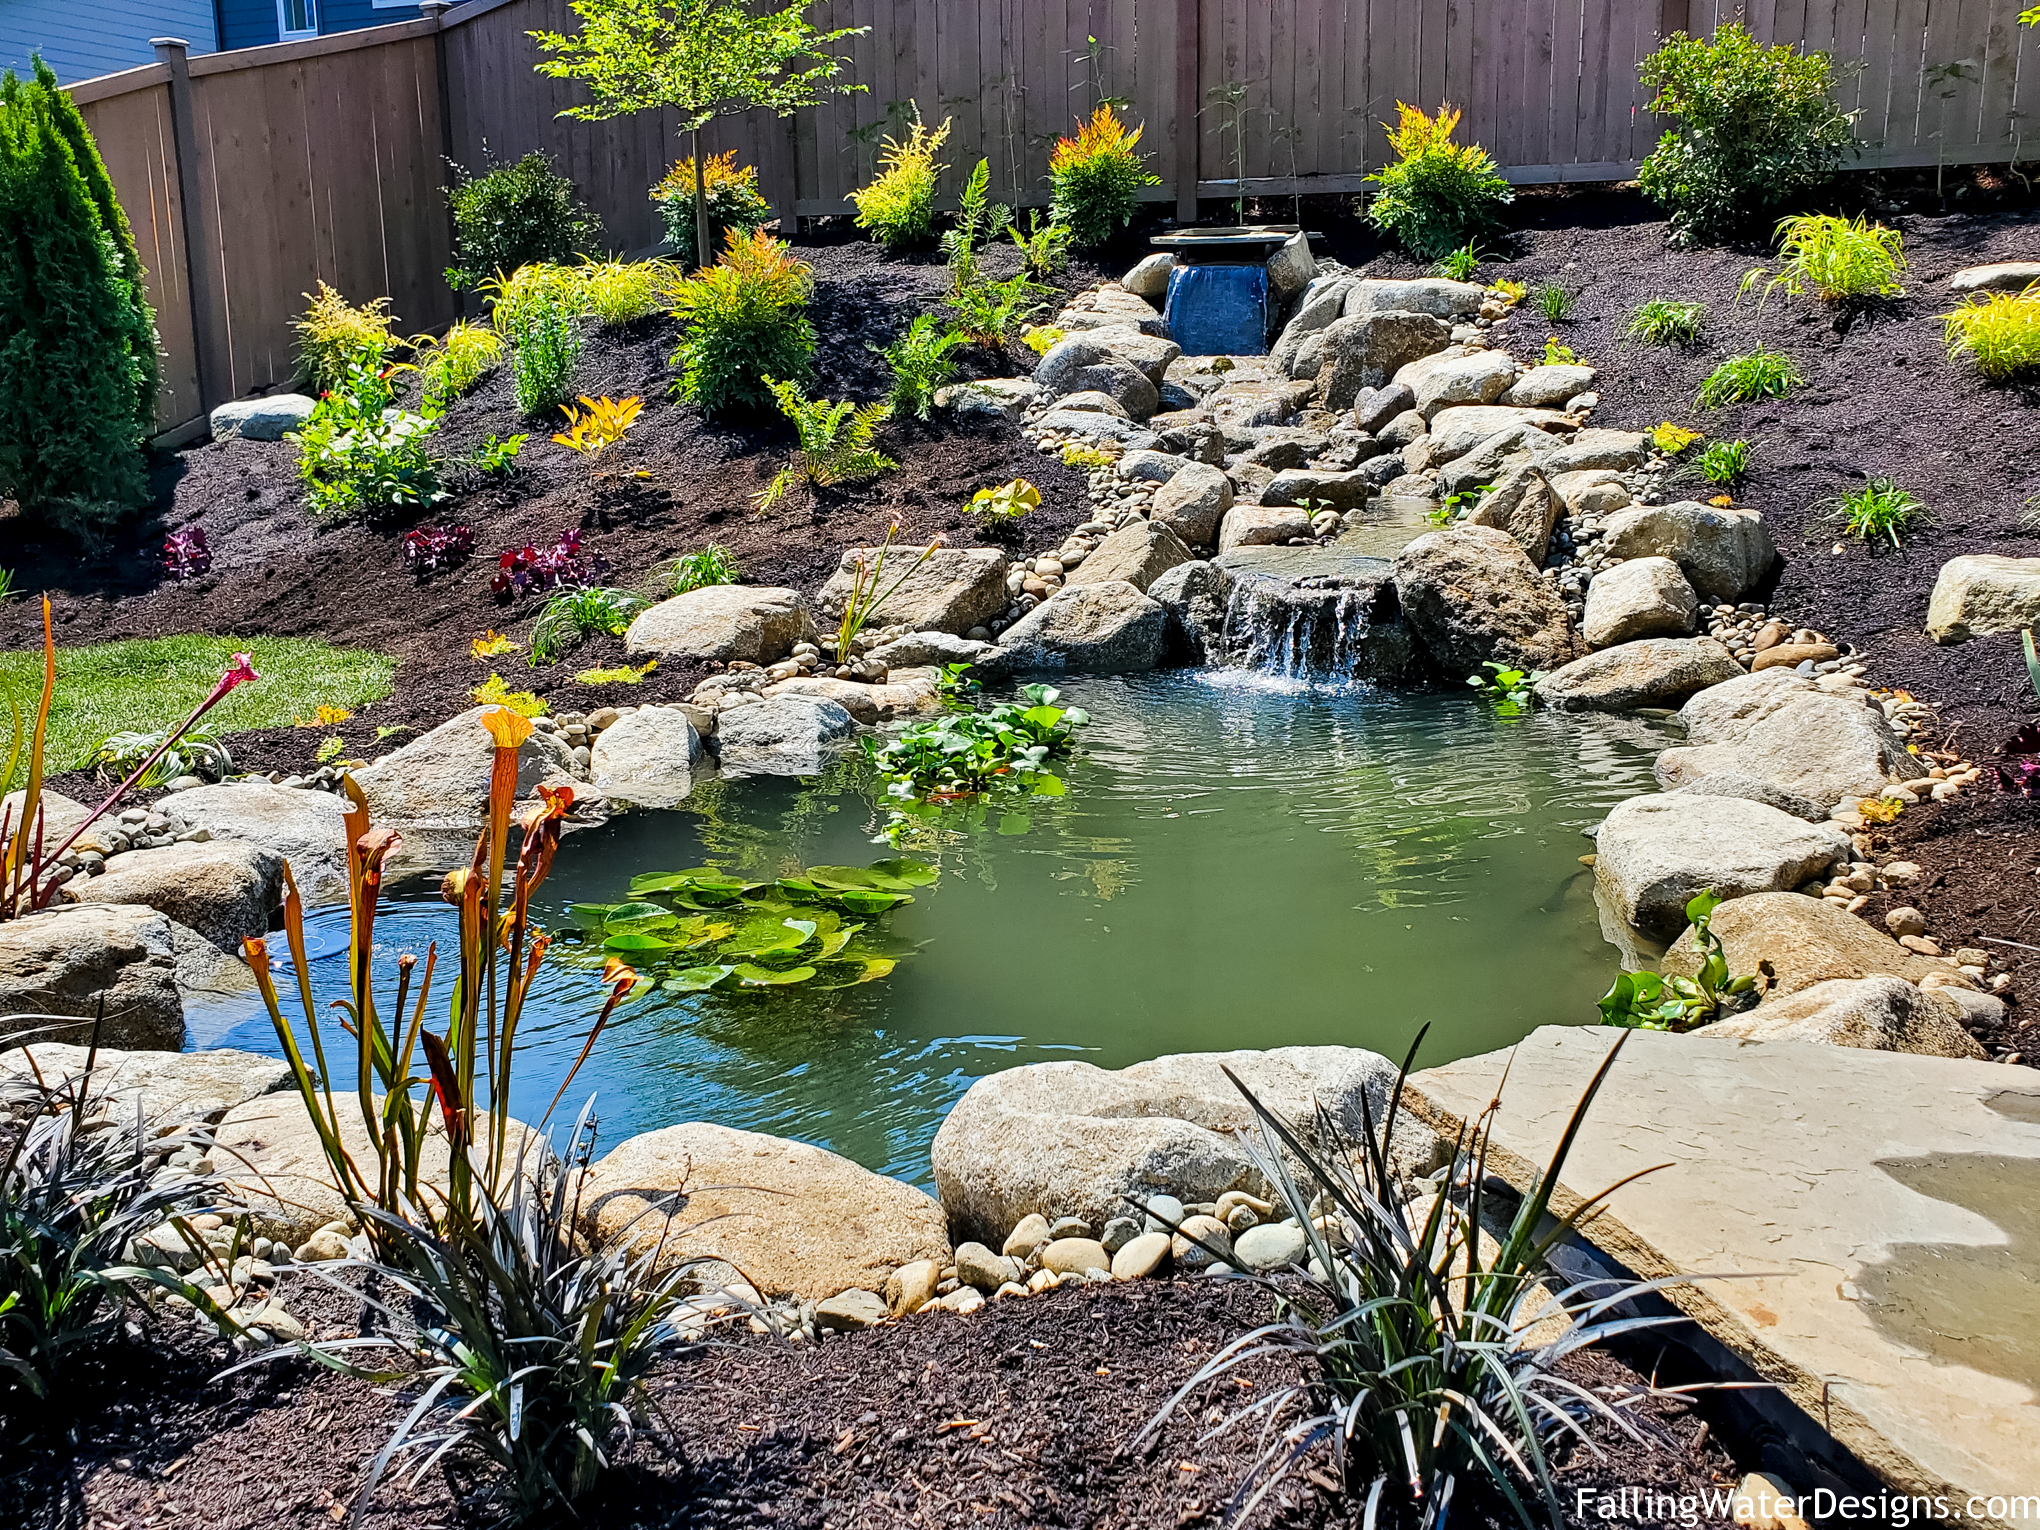 Koi pond installation by Falling Water Designs in Monroe WA serving the greater Puget Sound area, Seattle, Woodinville, Edmonds ©Falling Water Designs